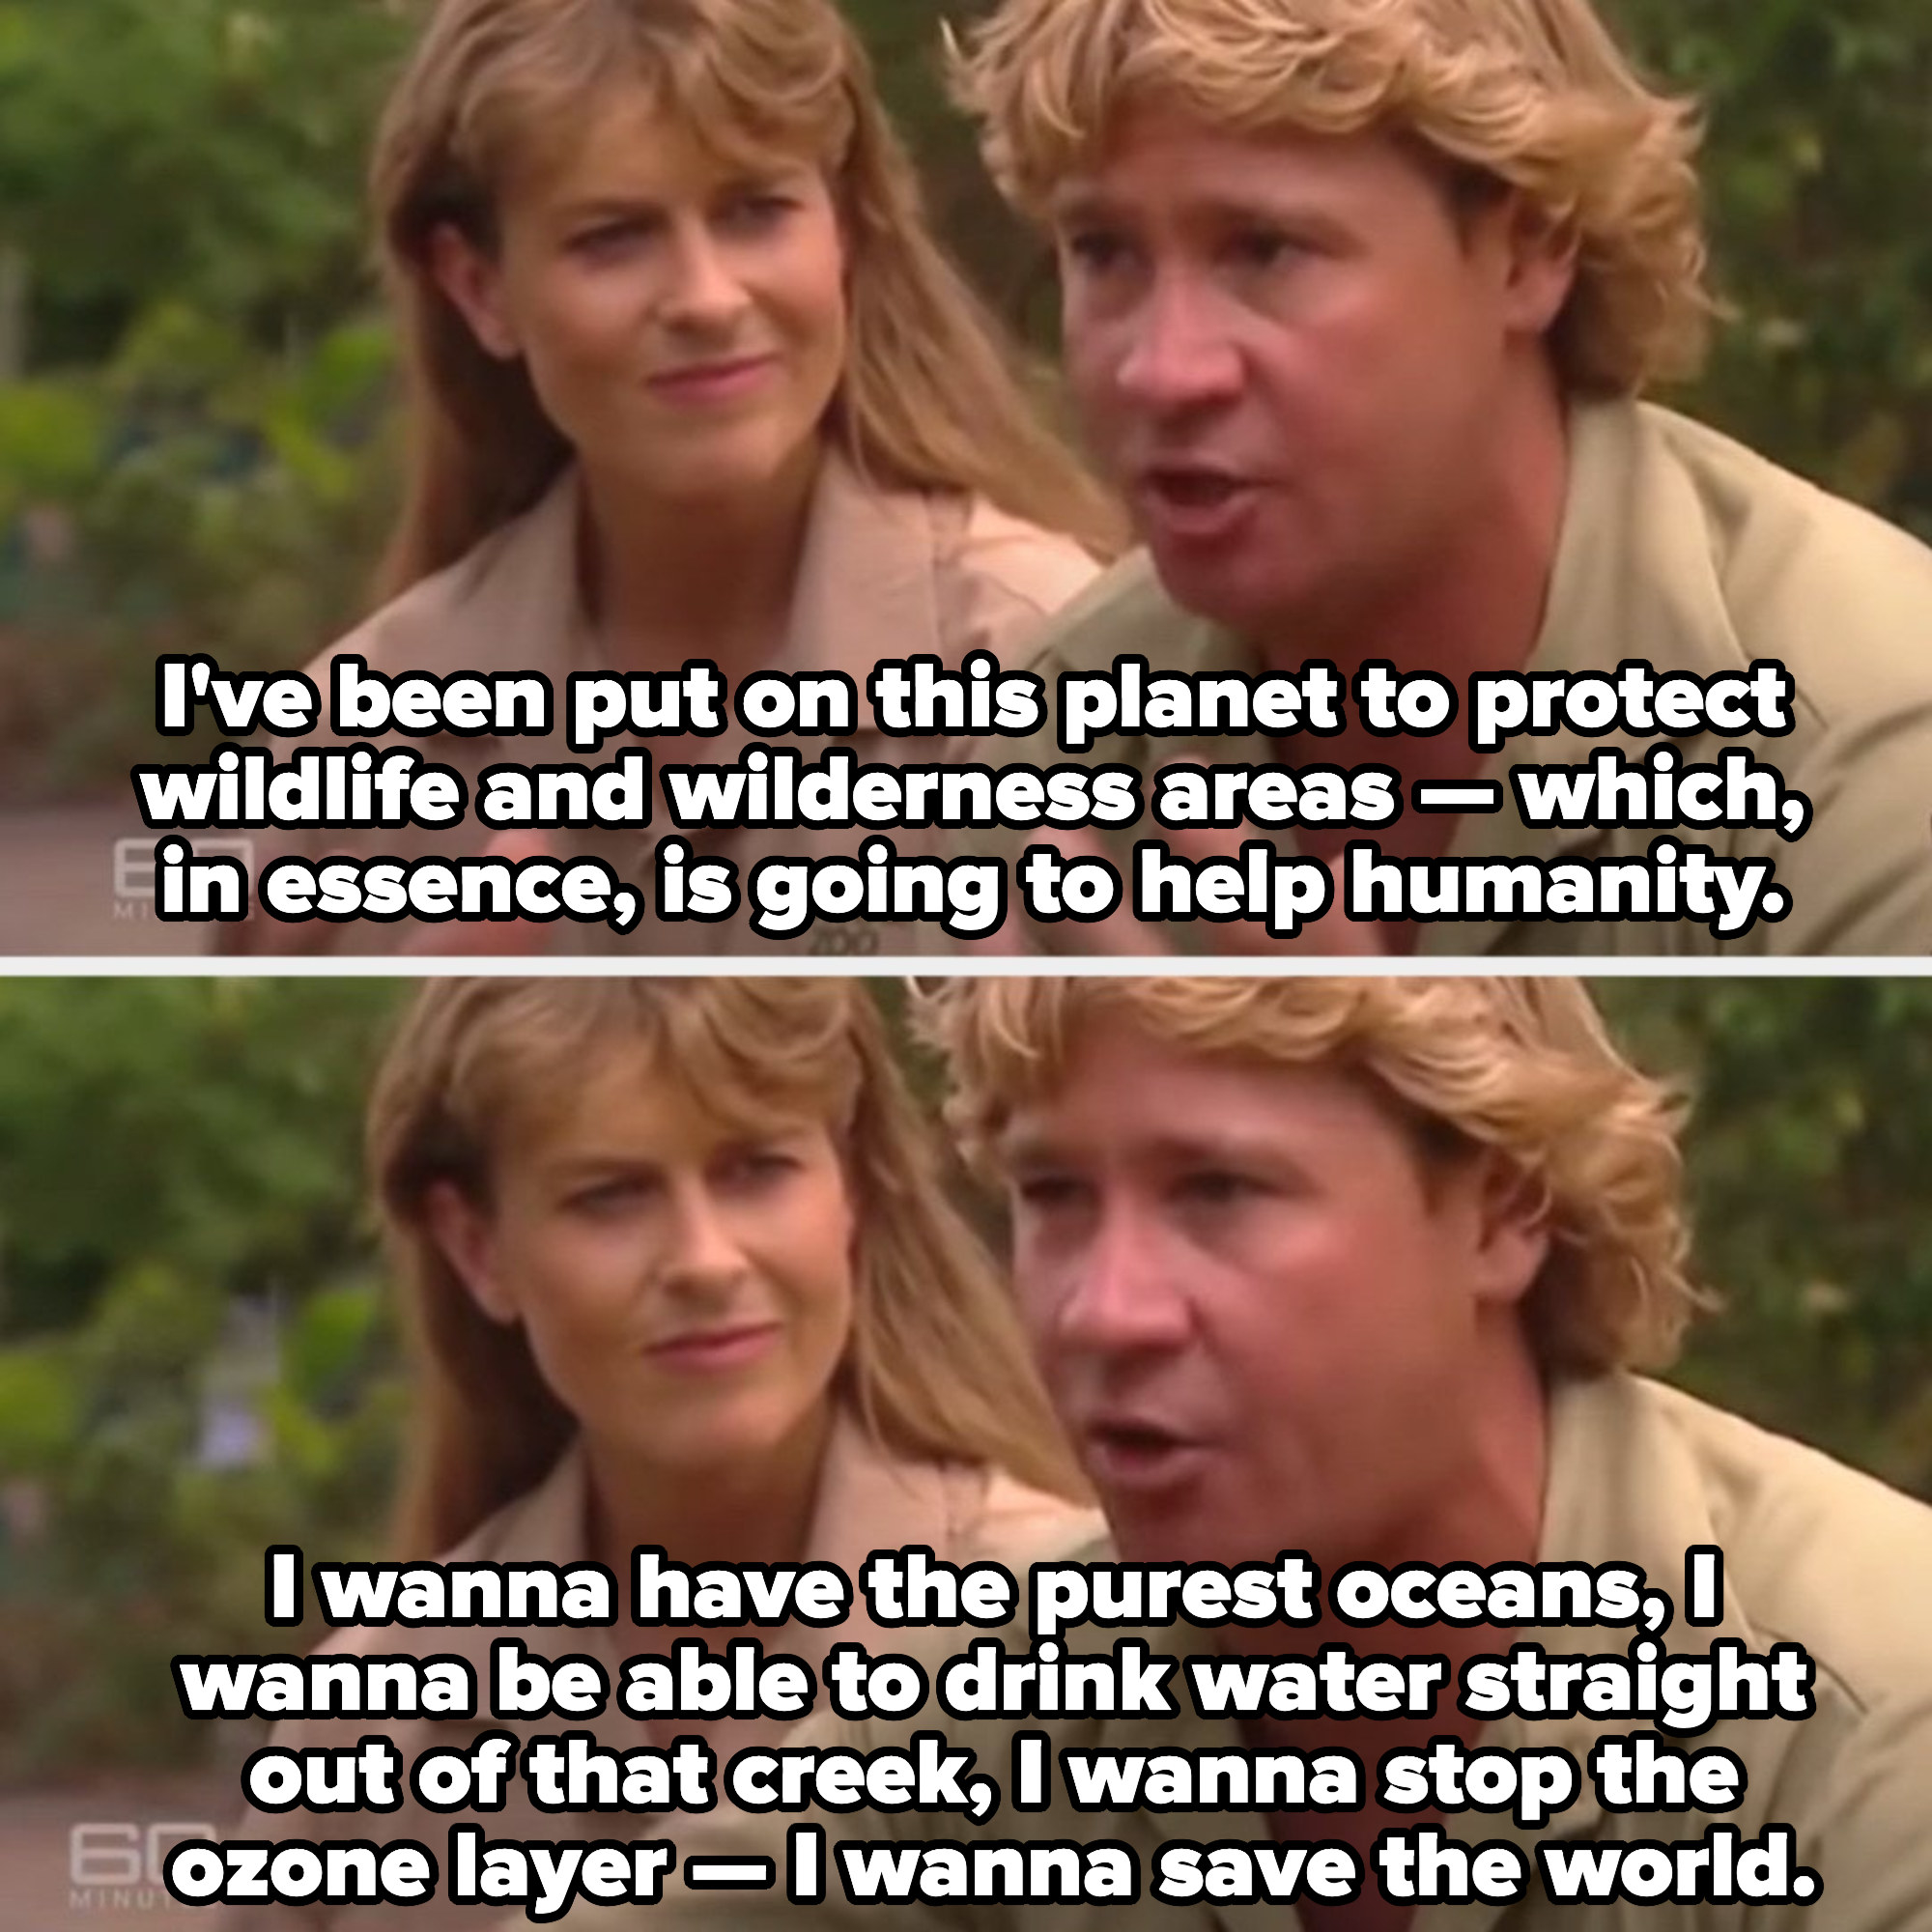 """Steve Irwin on """"60 Minutes,"""" describing how he wants to clean the earth and make it a better place"""